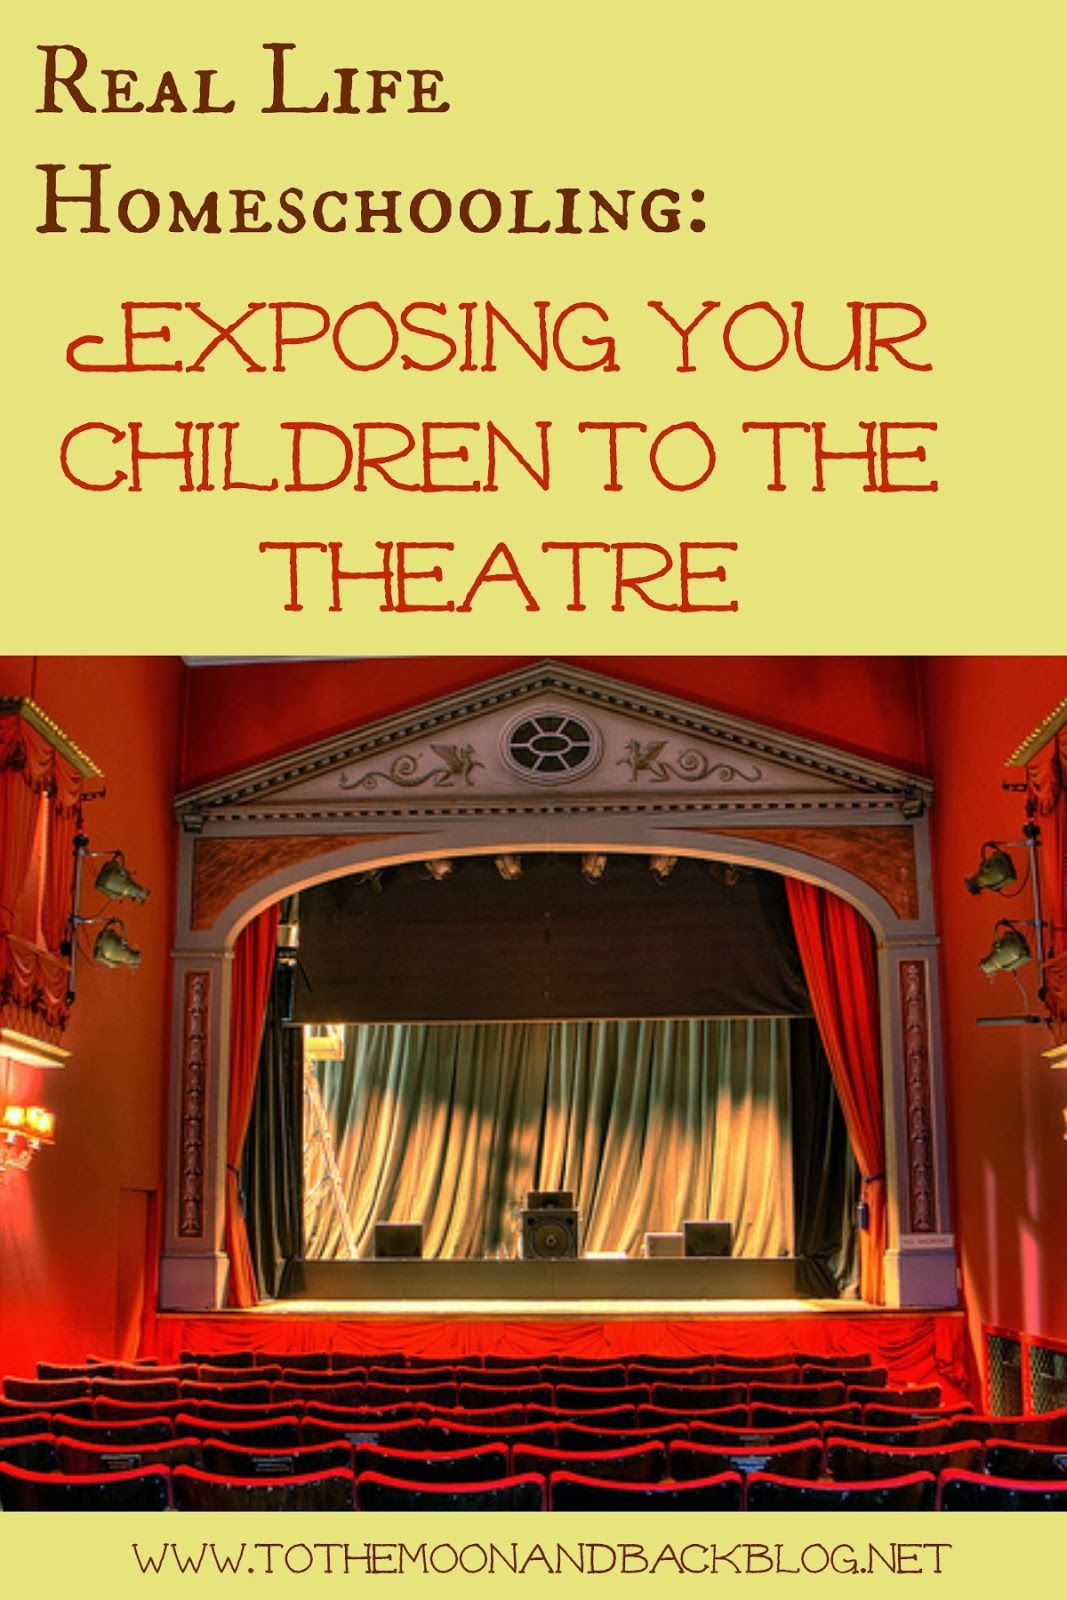 Exposing Children To The Theatre Real Life Homeschooling